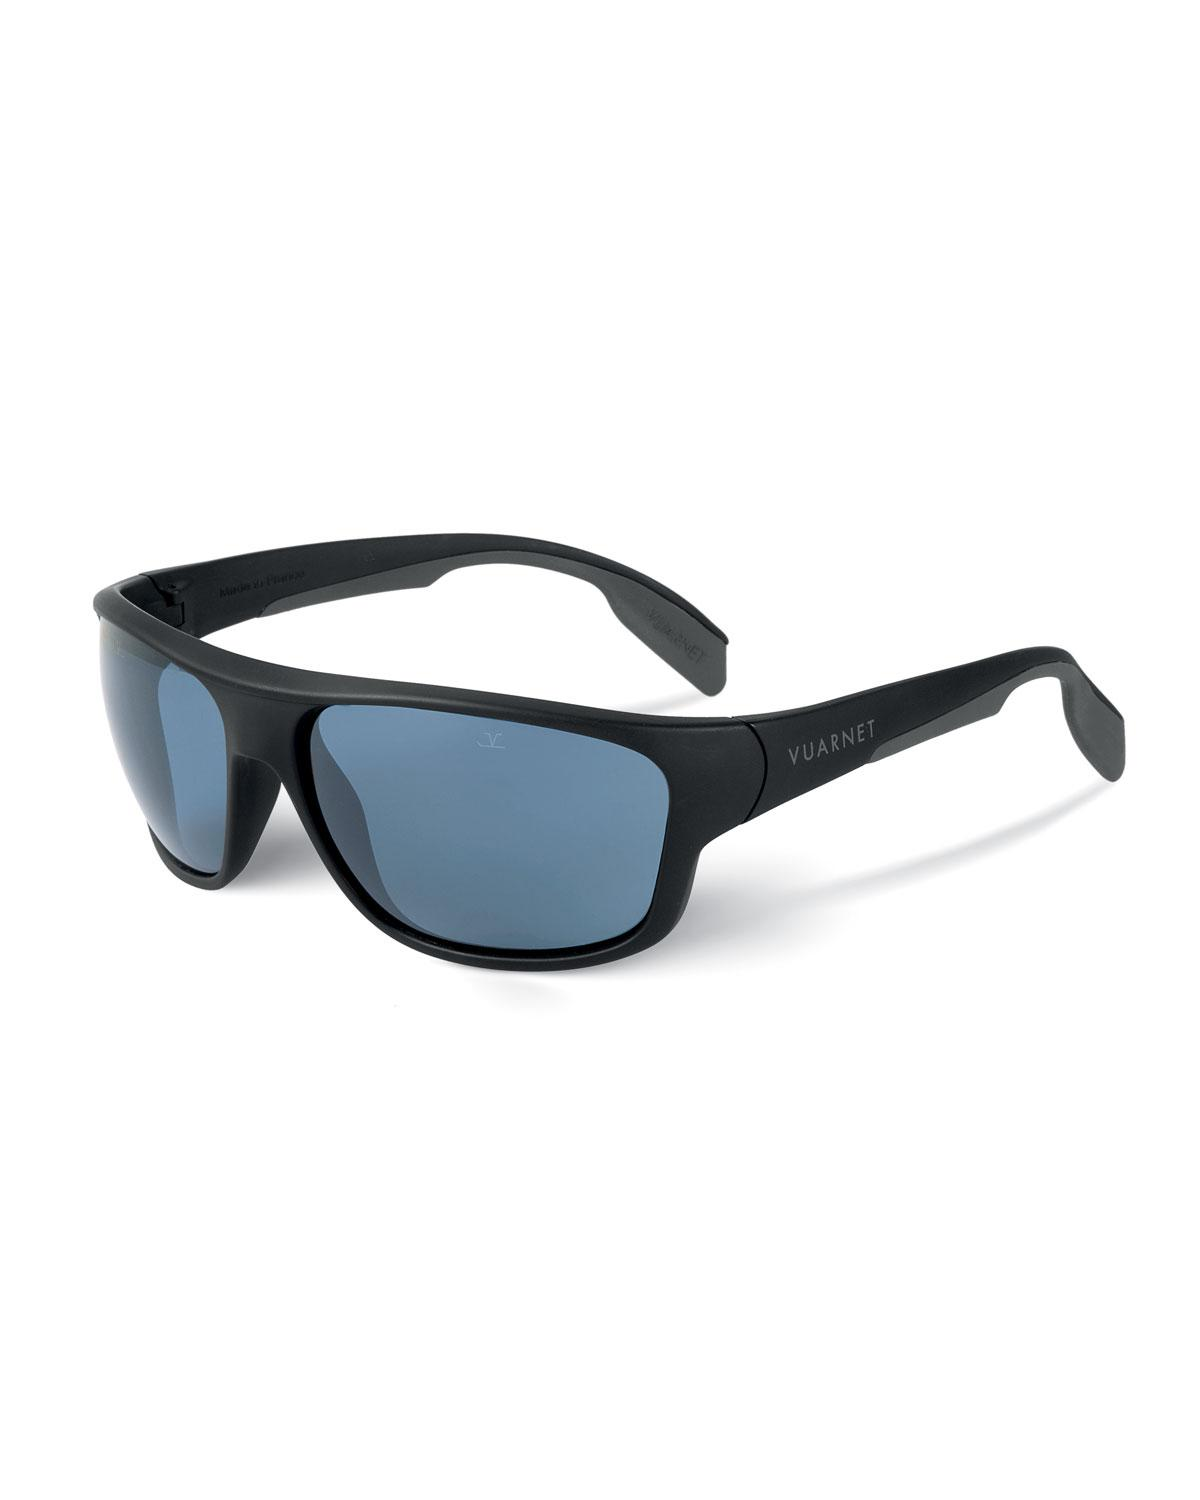 5c2b52ee31a3 Lyst - Vuarnet Men s Active Racing Large Nylon Wrap Sunglasses in Blue for  Men